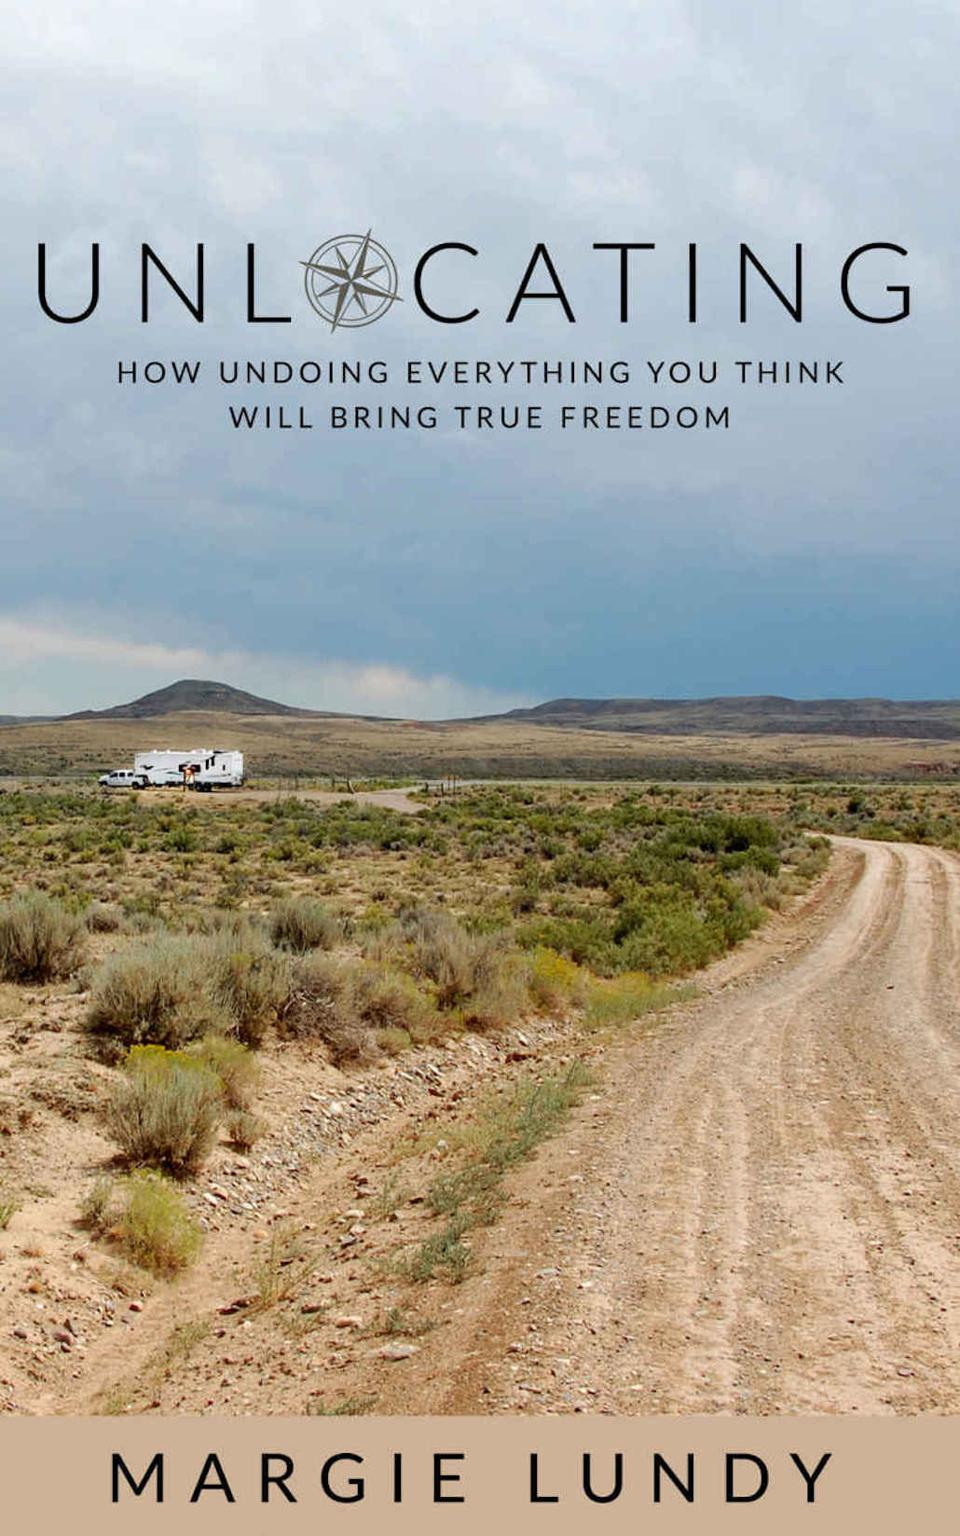 Unlocating: How Undoing Everything You Think Will Bring True Freedom by Margie Lundy